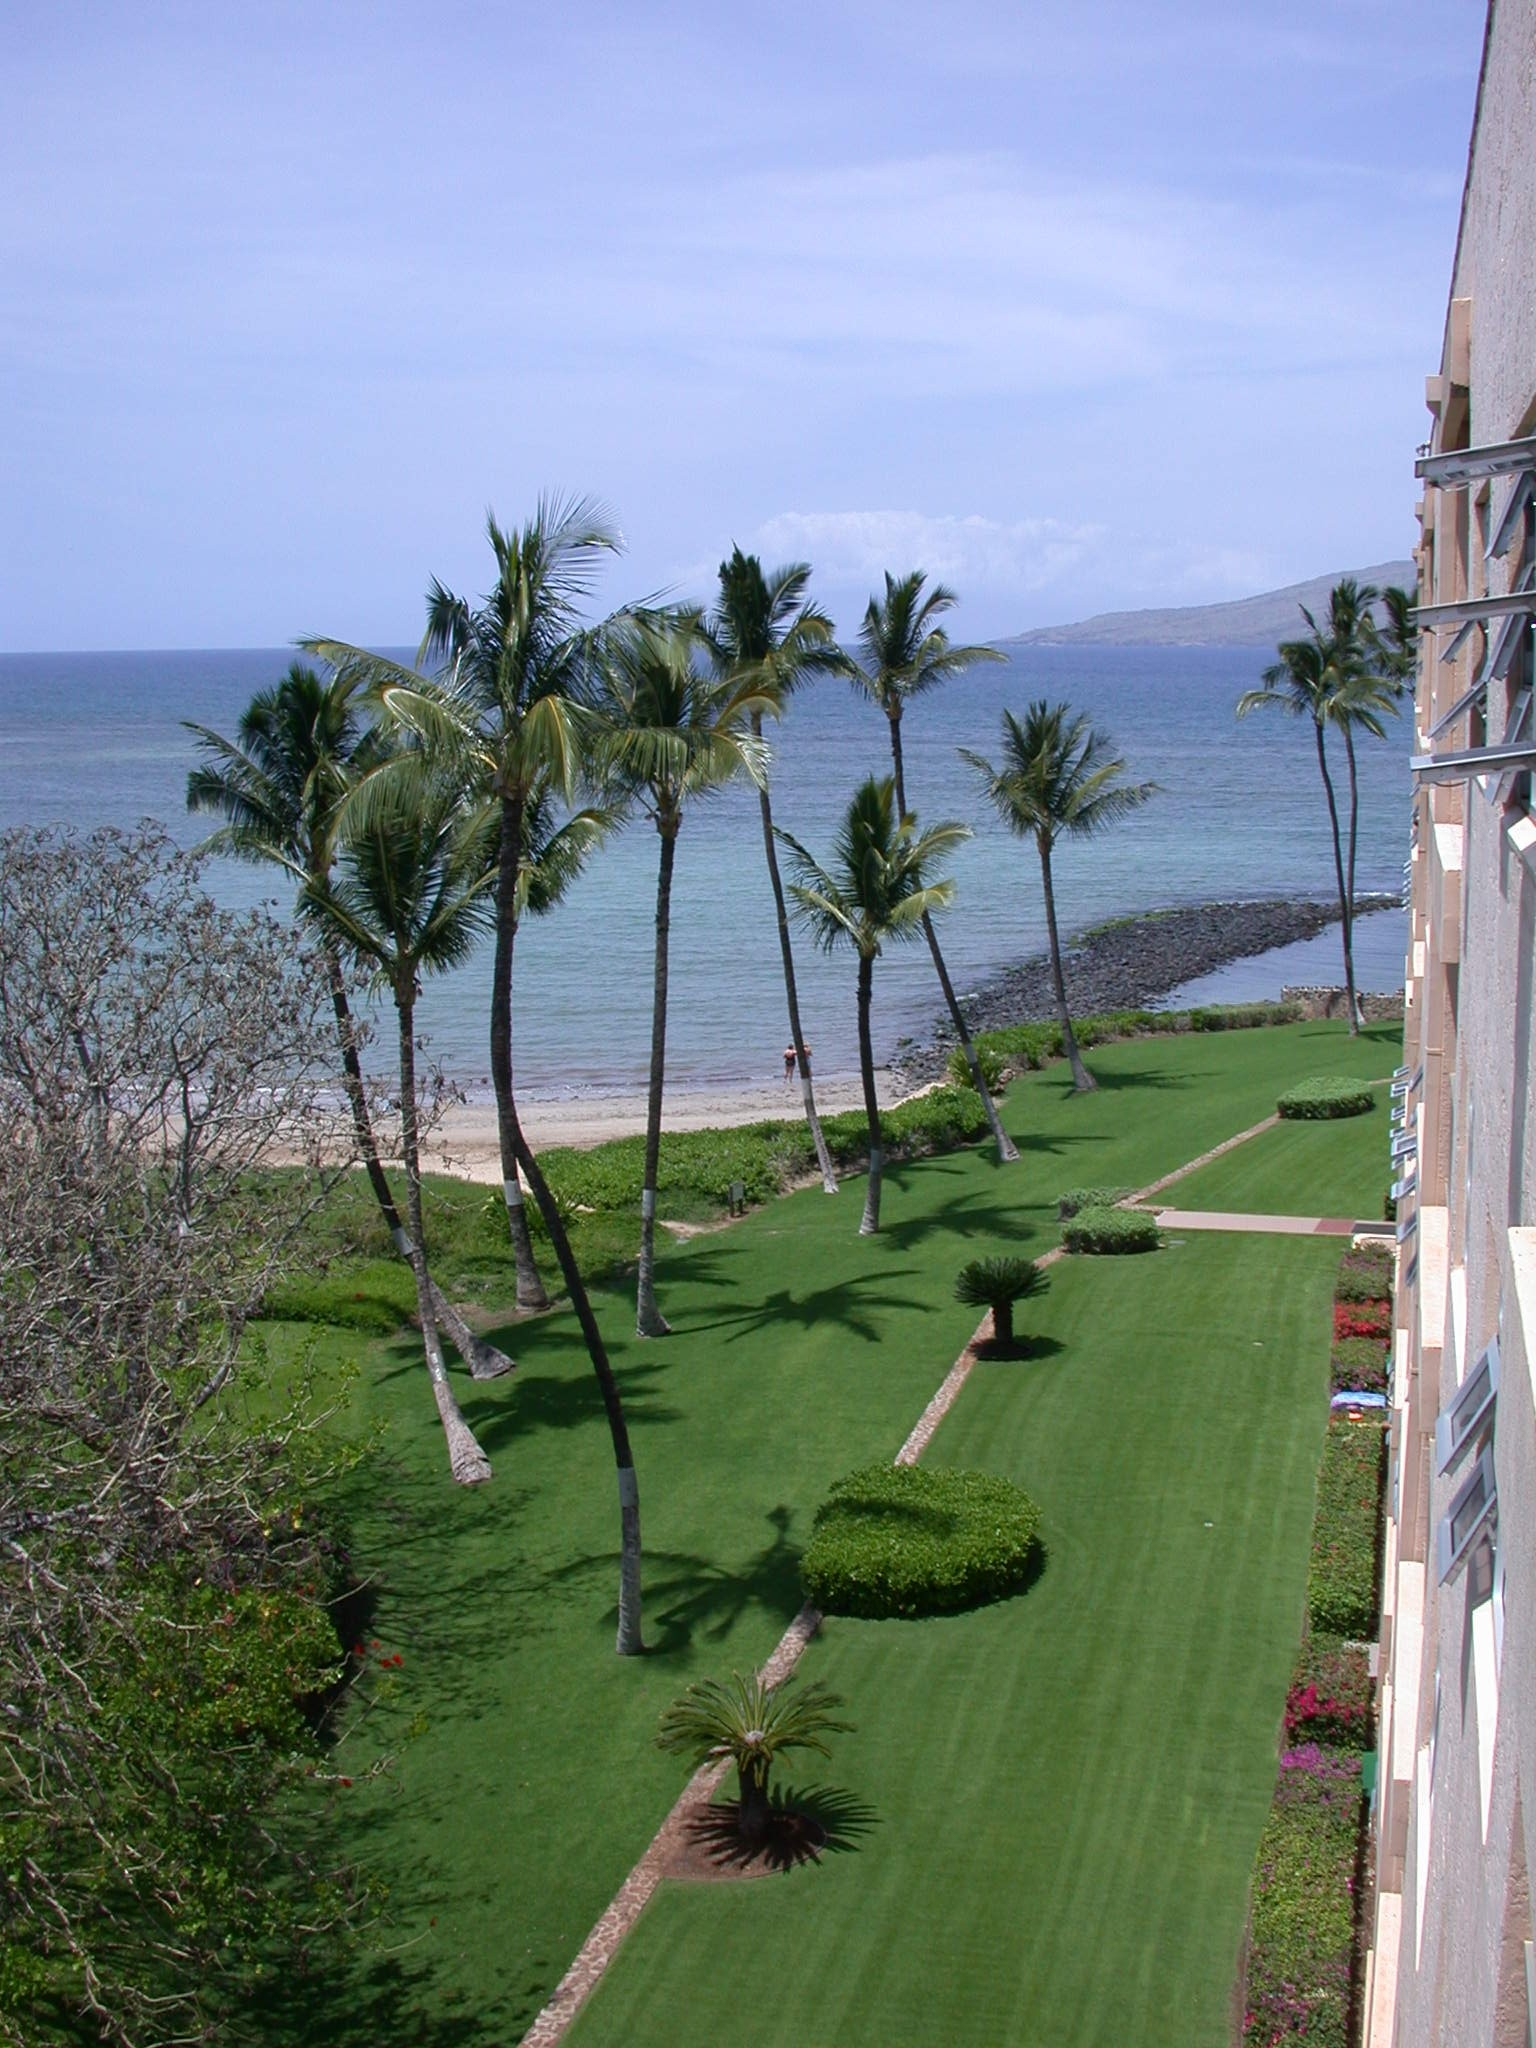 Lanai view looking down onto grounds